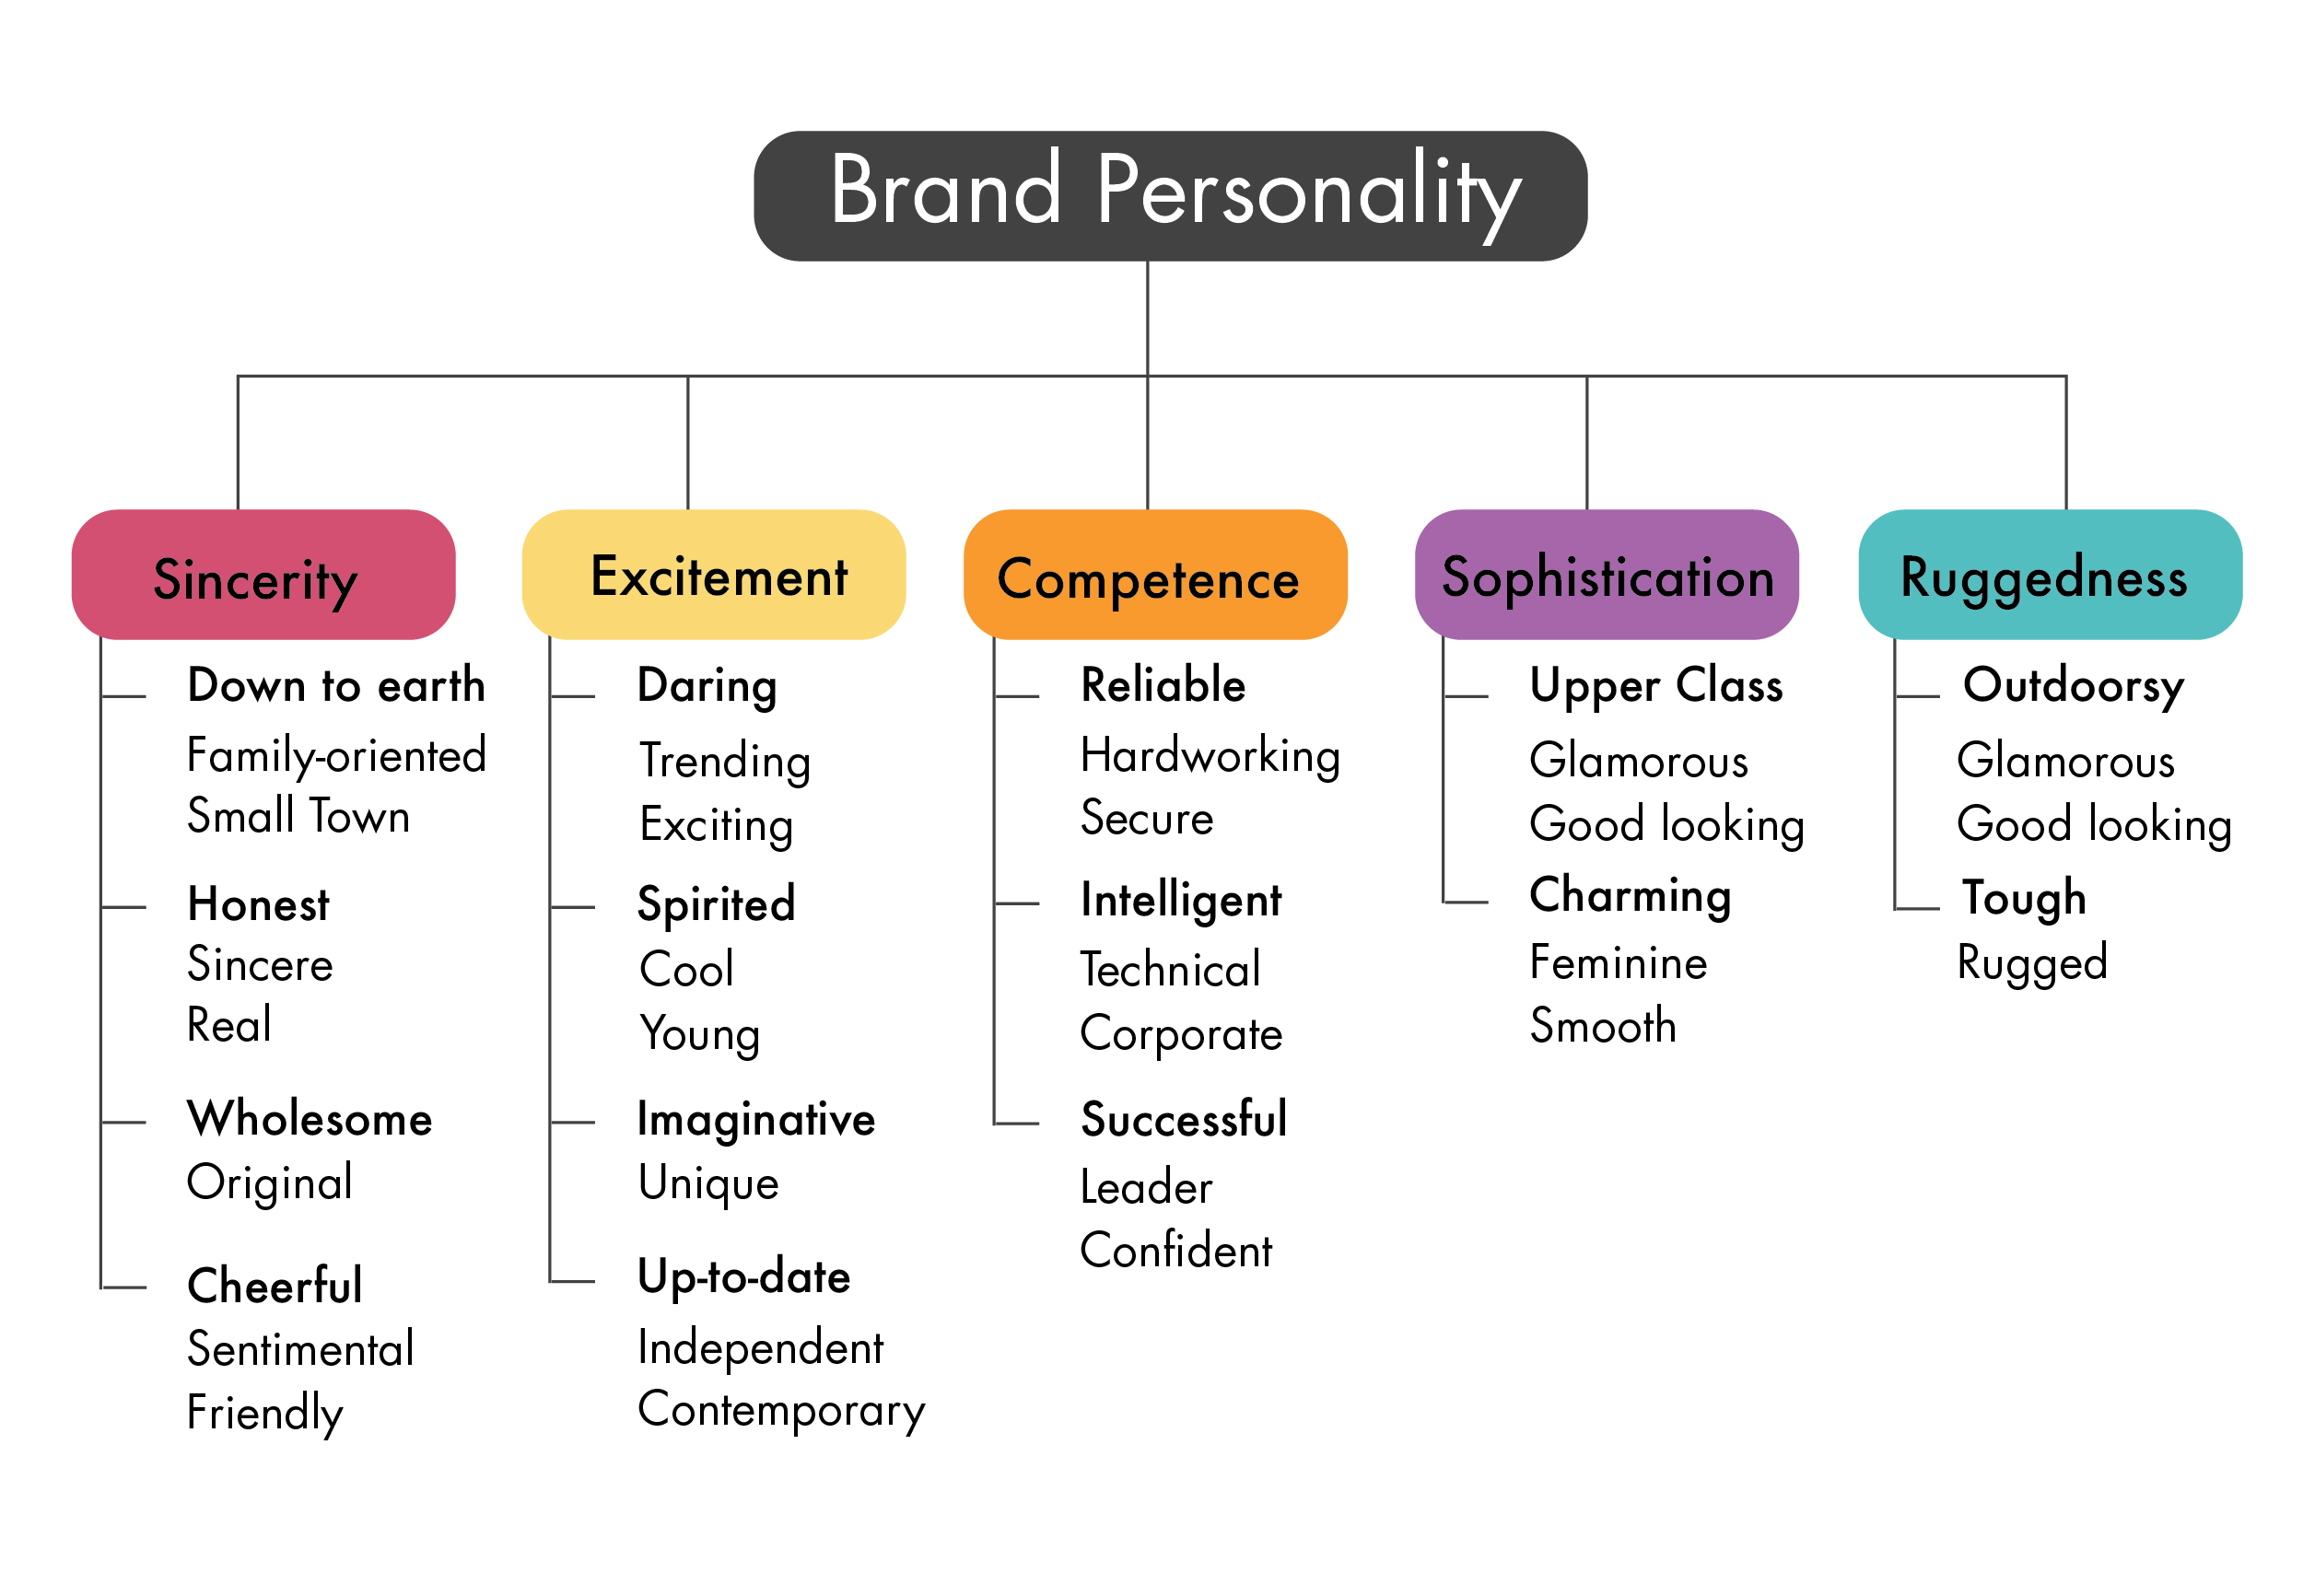 Aaker's Five Dimensions Of Brand Personality